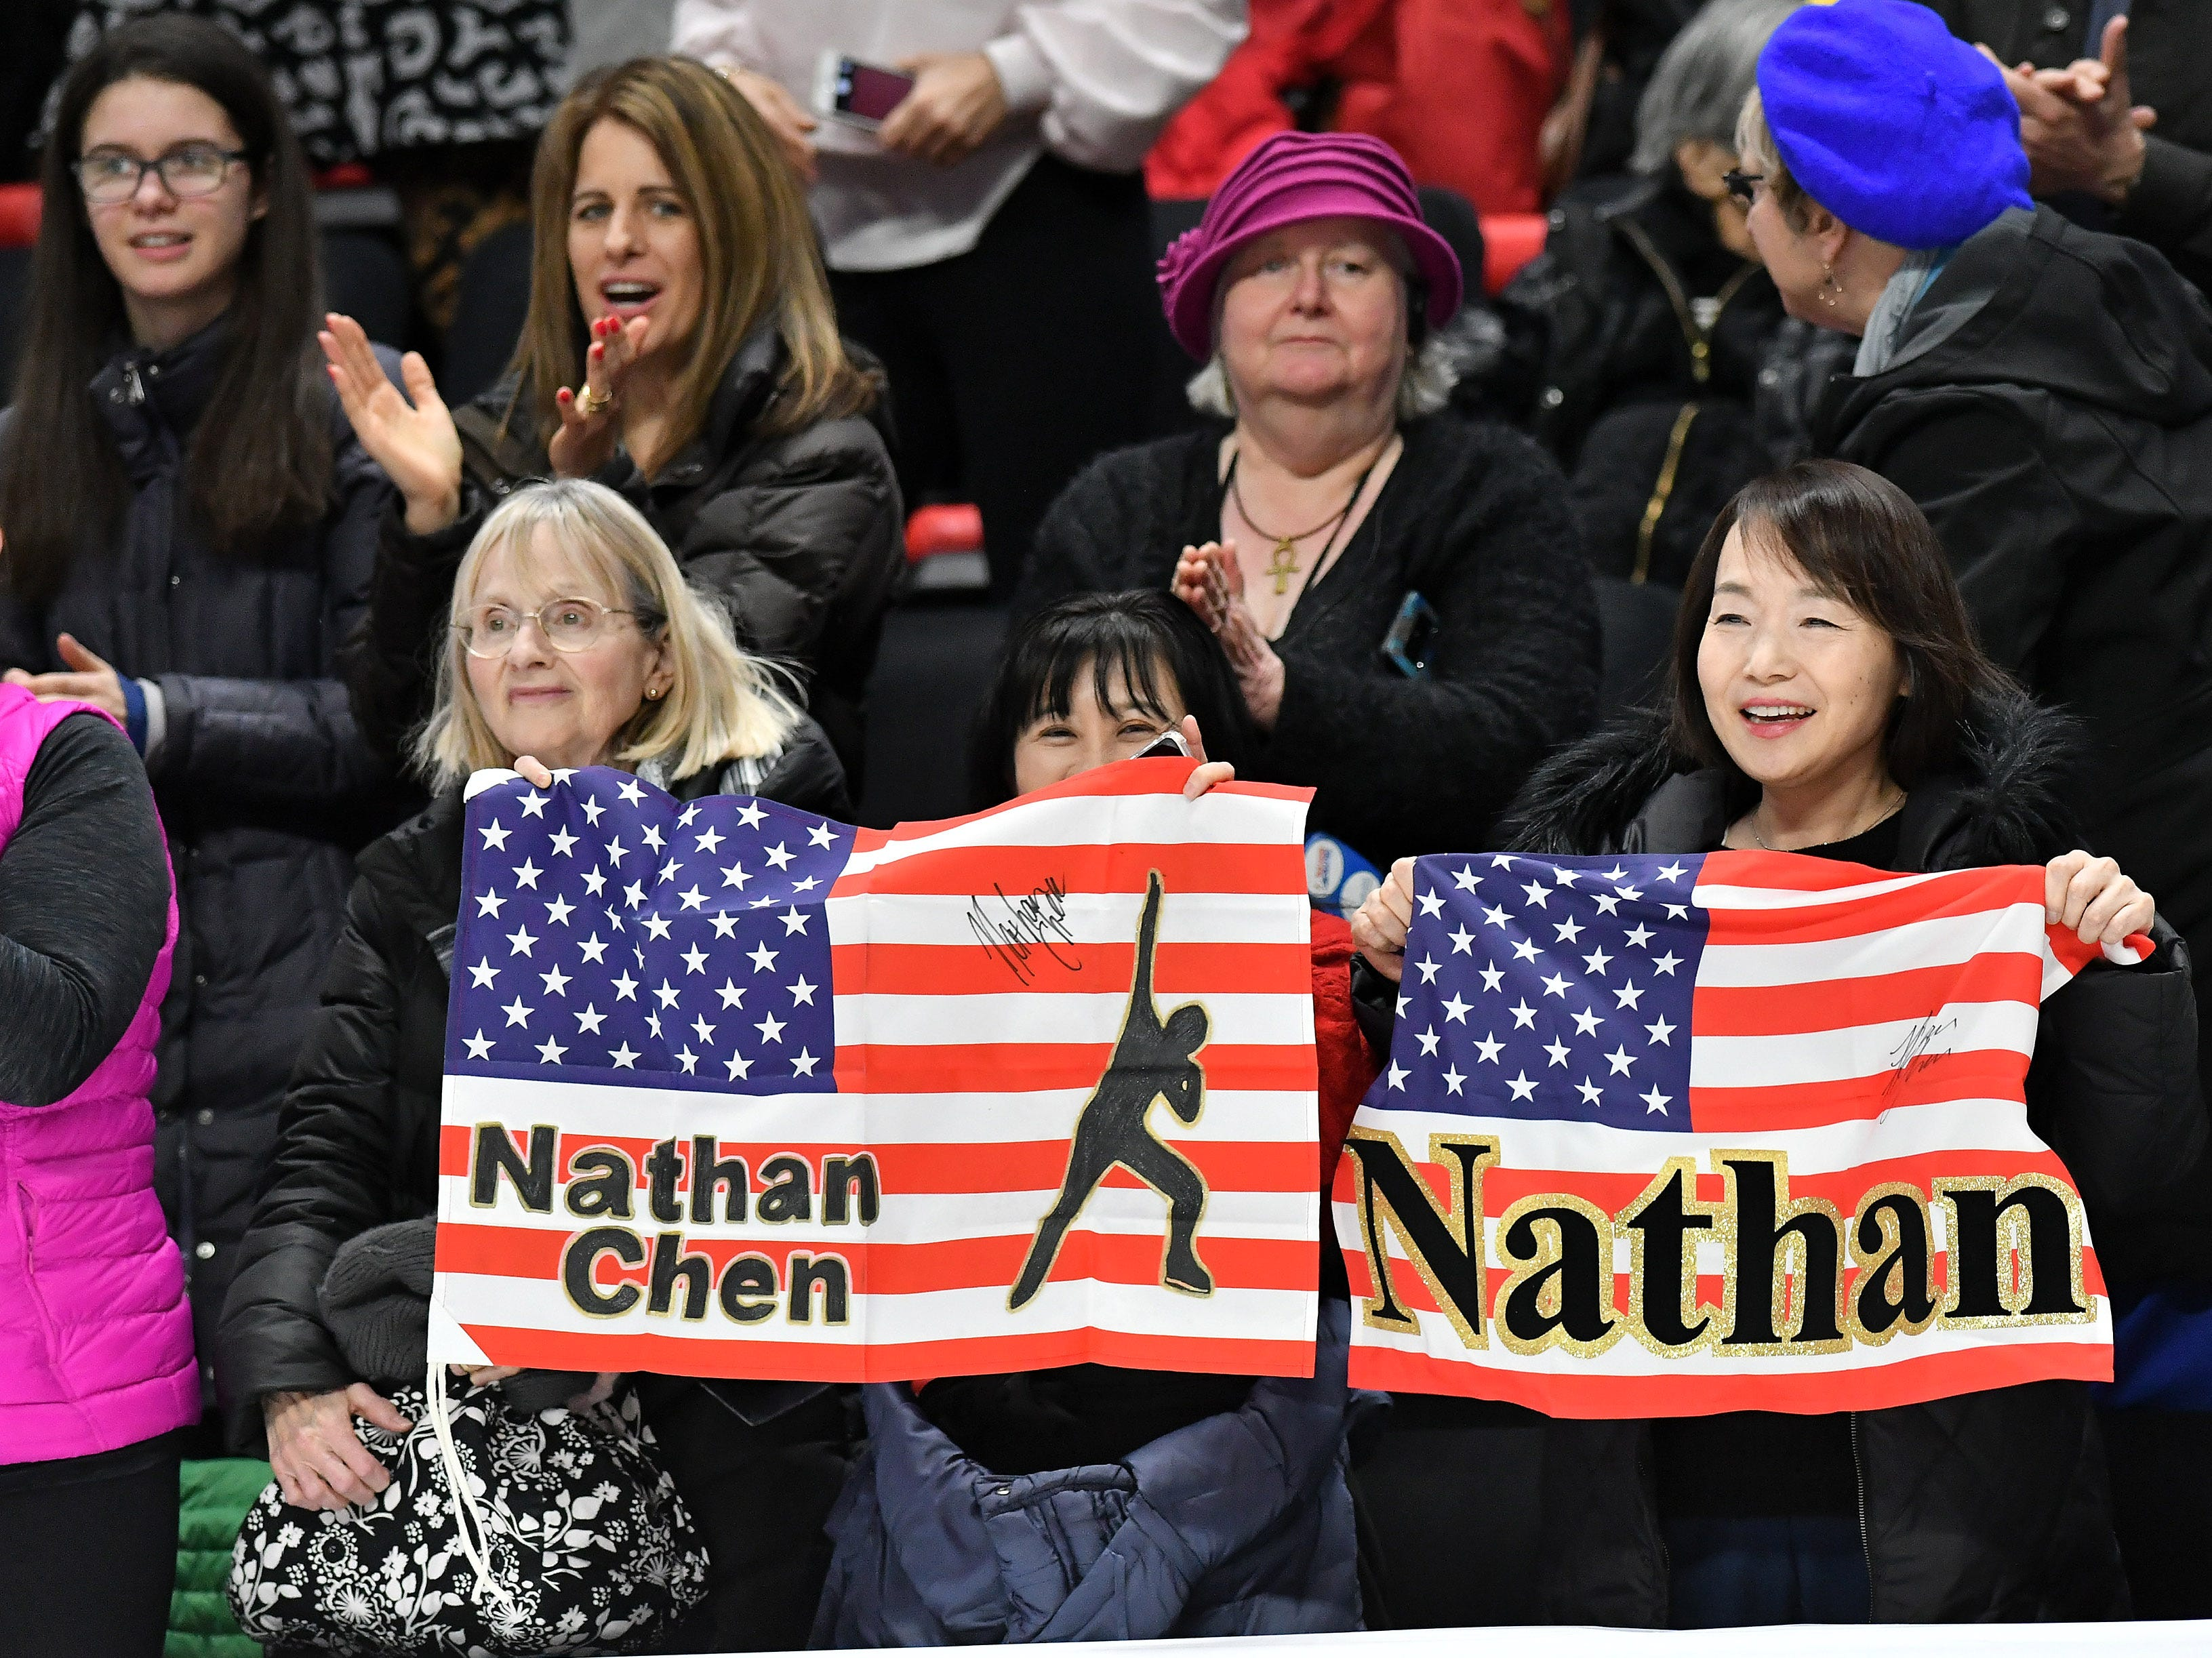 Fans cheer after Nathan Chen skates in the men's free skate.